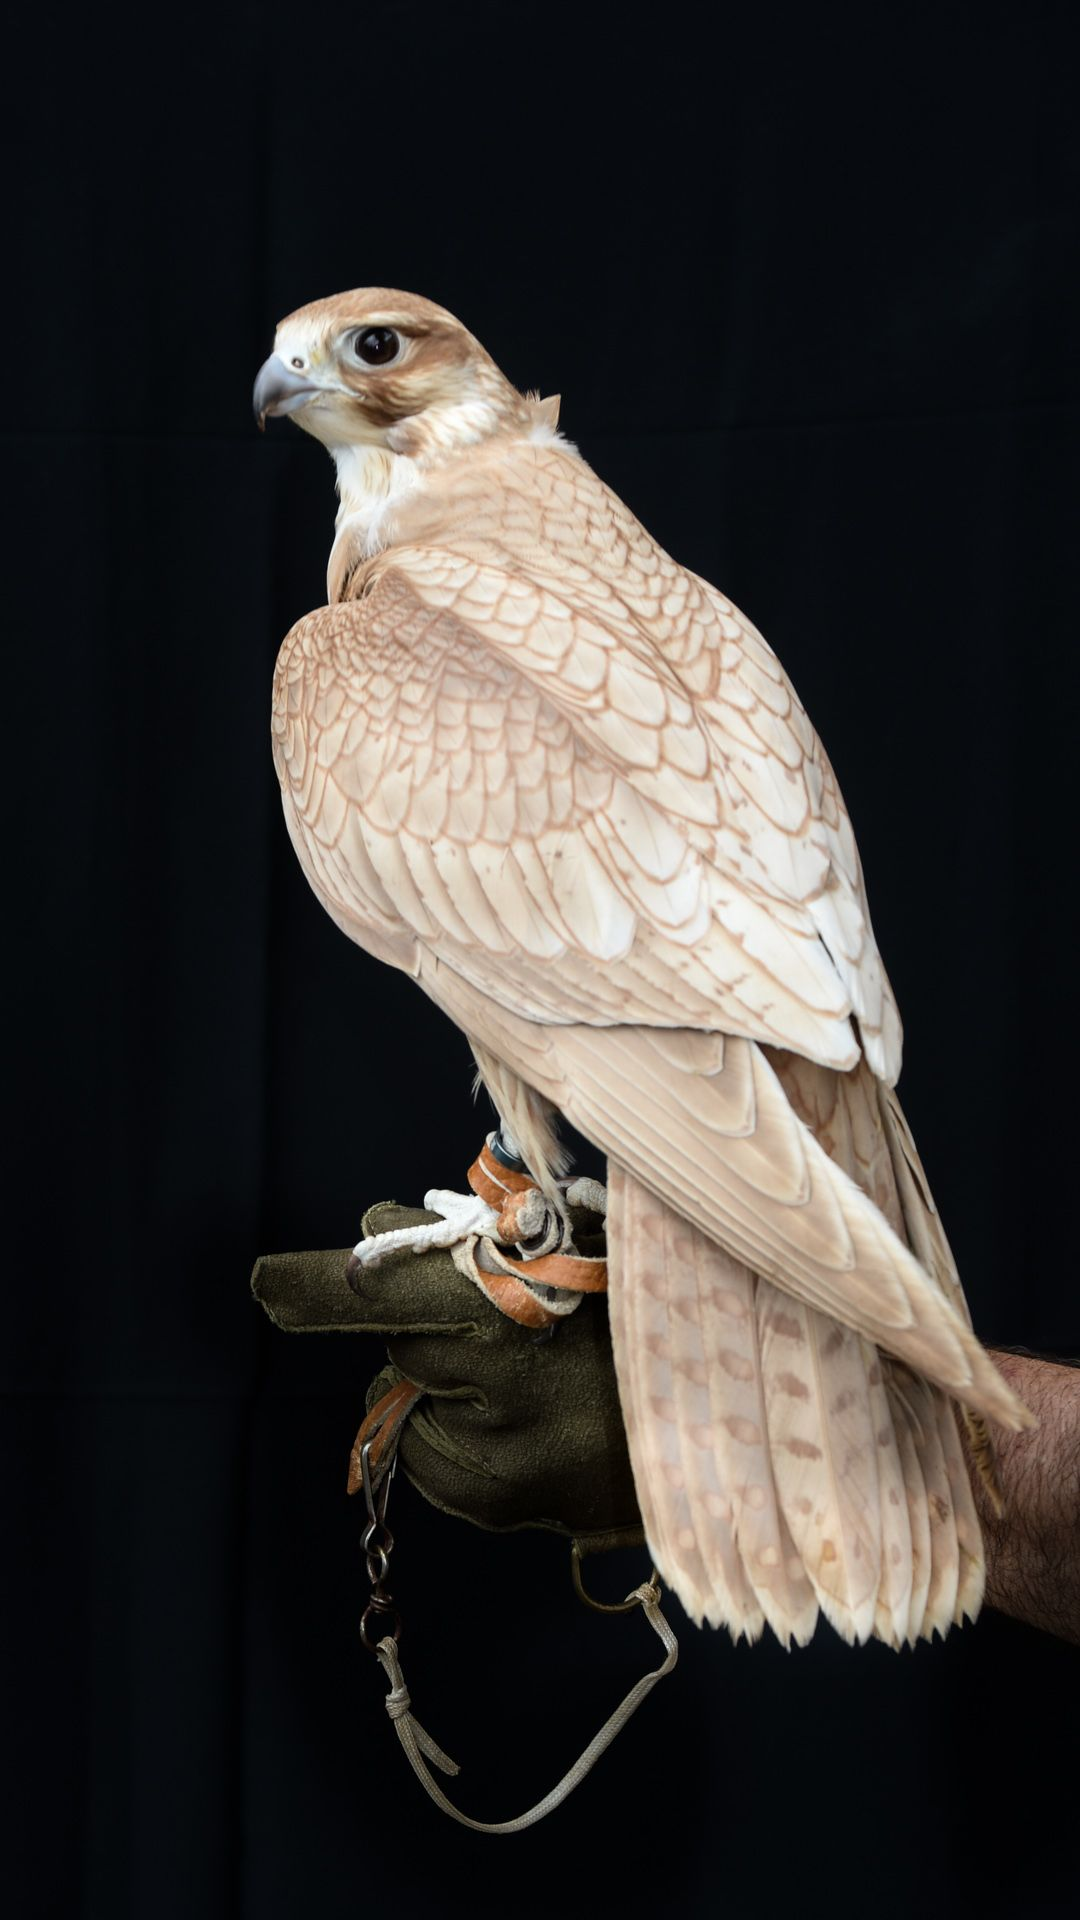 Golden Falcon Hybrid The Explosive Power Of The Peregrine Falcon Meets The Robustness And Elegance Of The Saker Falcon Cr Beautiful Birds Pet Birds Animals